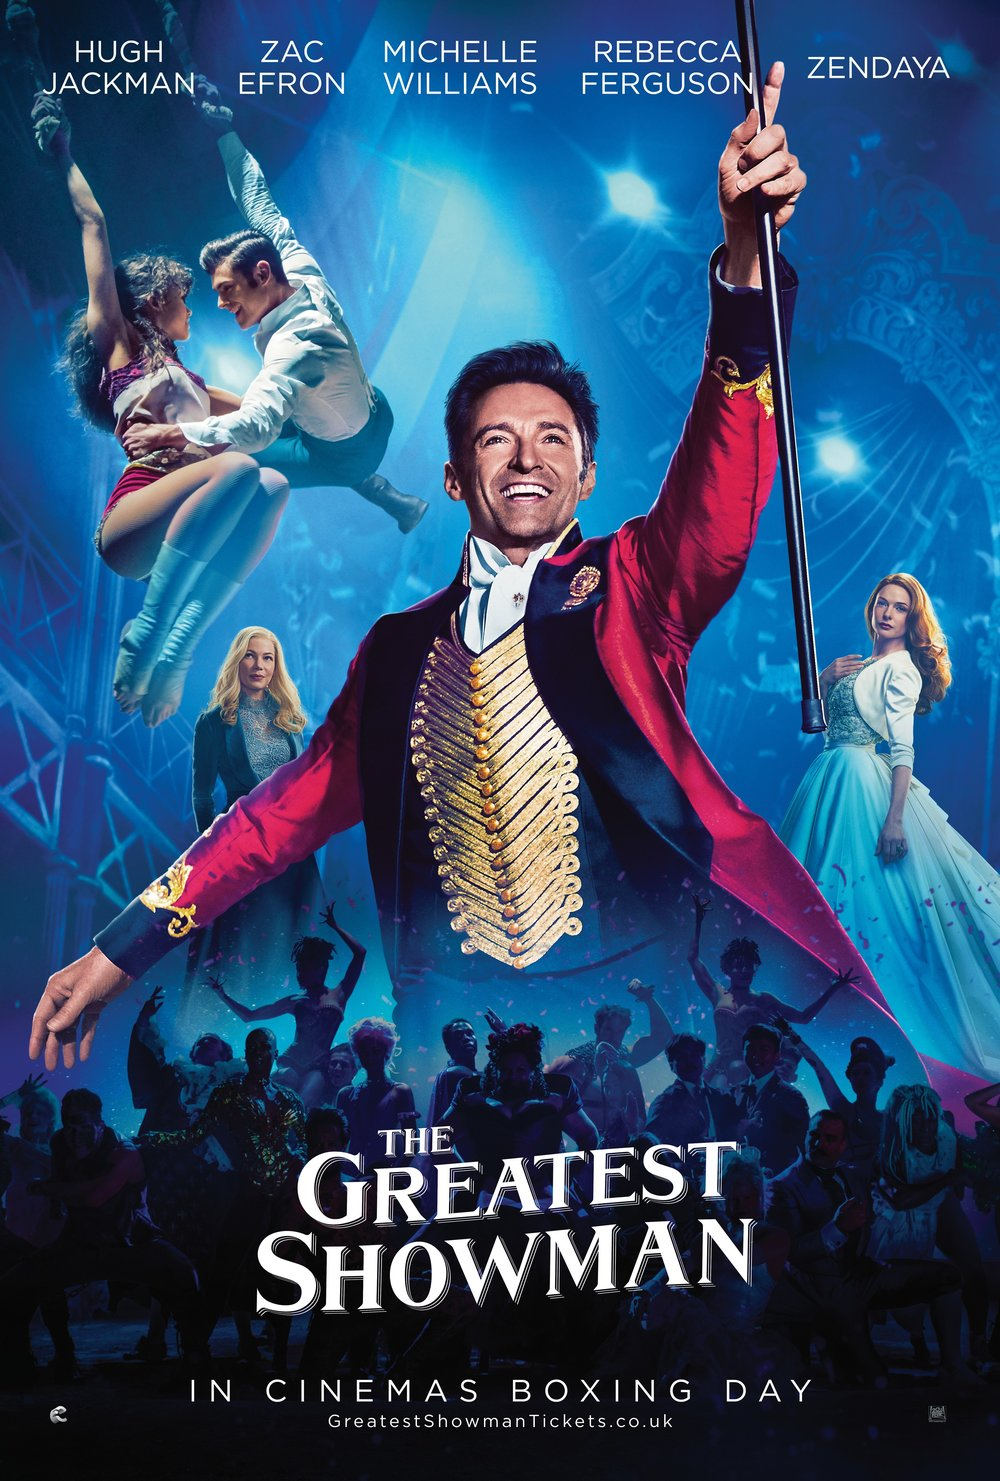 http://www.campbeltownpicturehouse.co.uk/movies/the-greatest-showman/